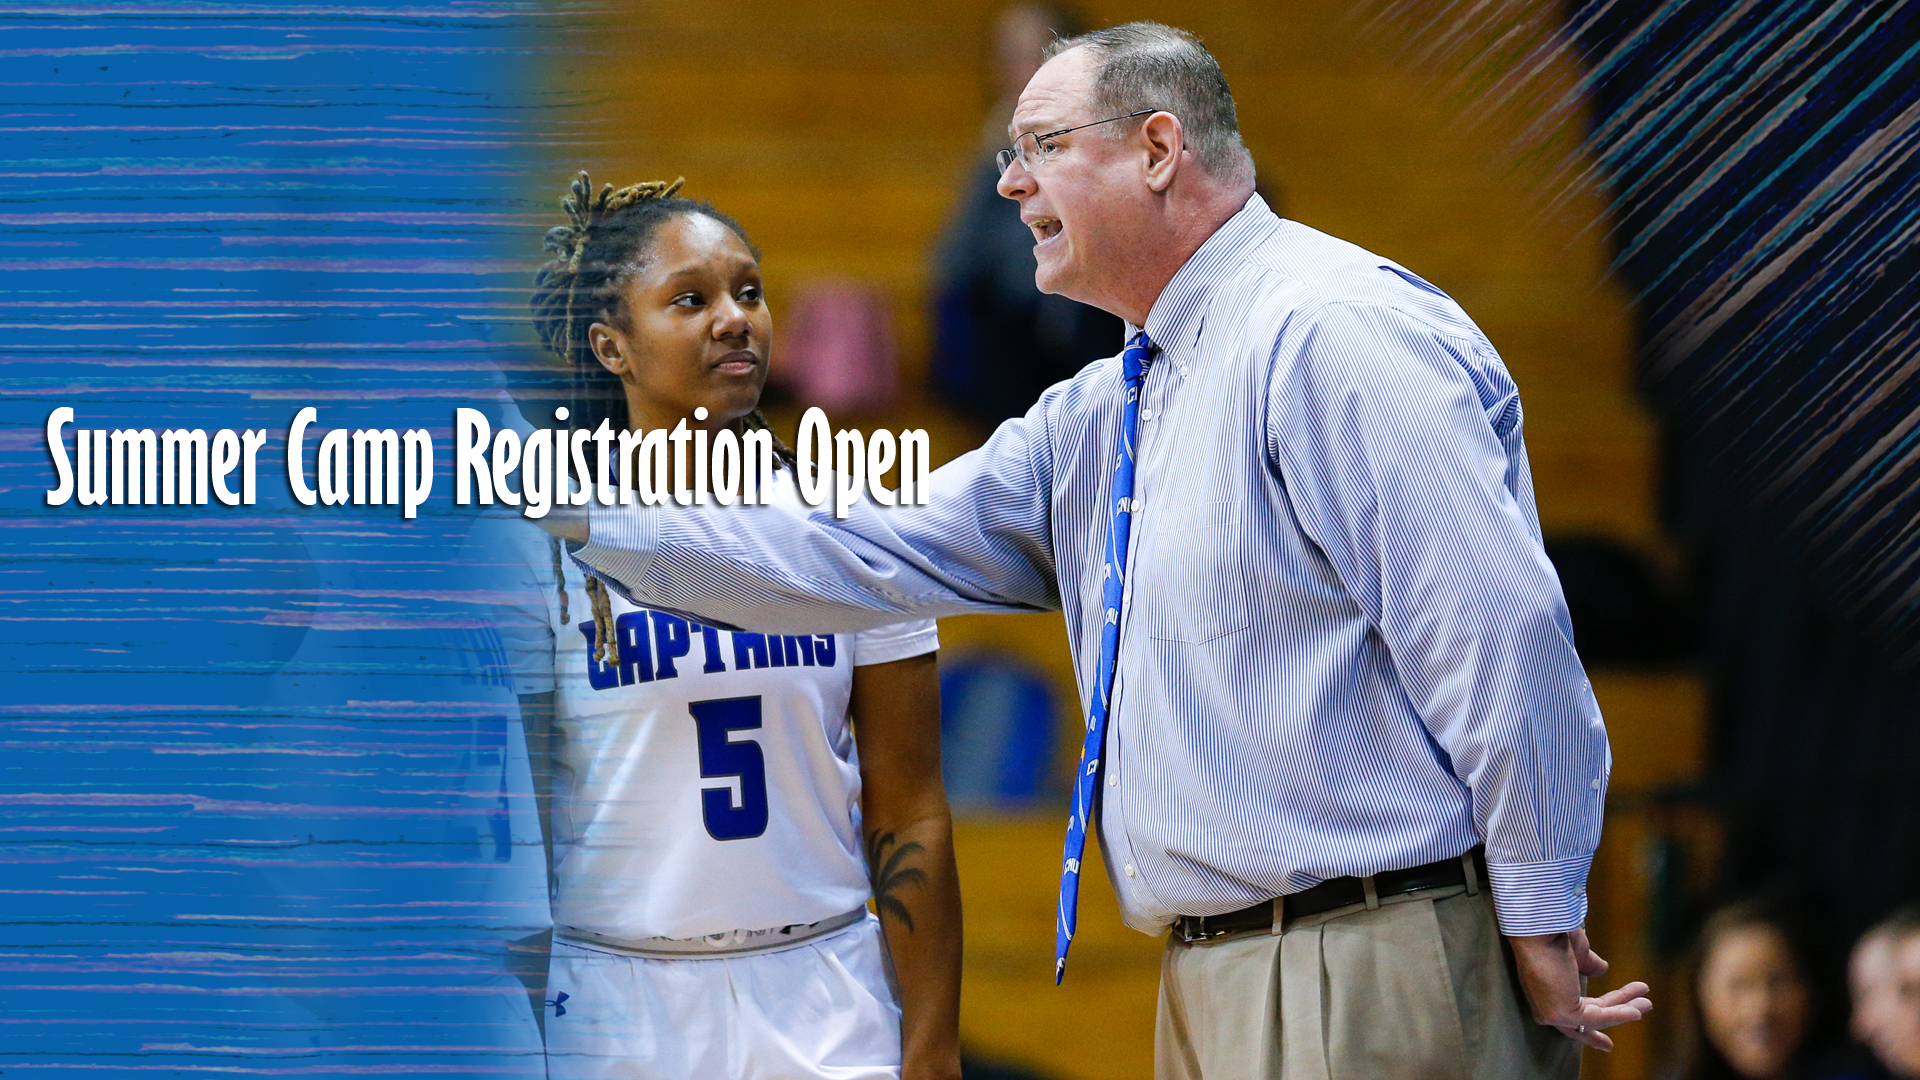 Registration Open for 2019 Girls Basketball Camps - Christopher